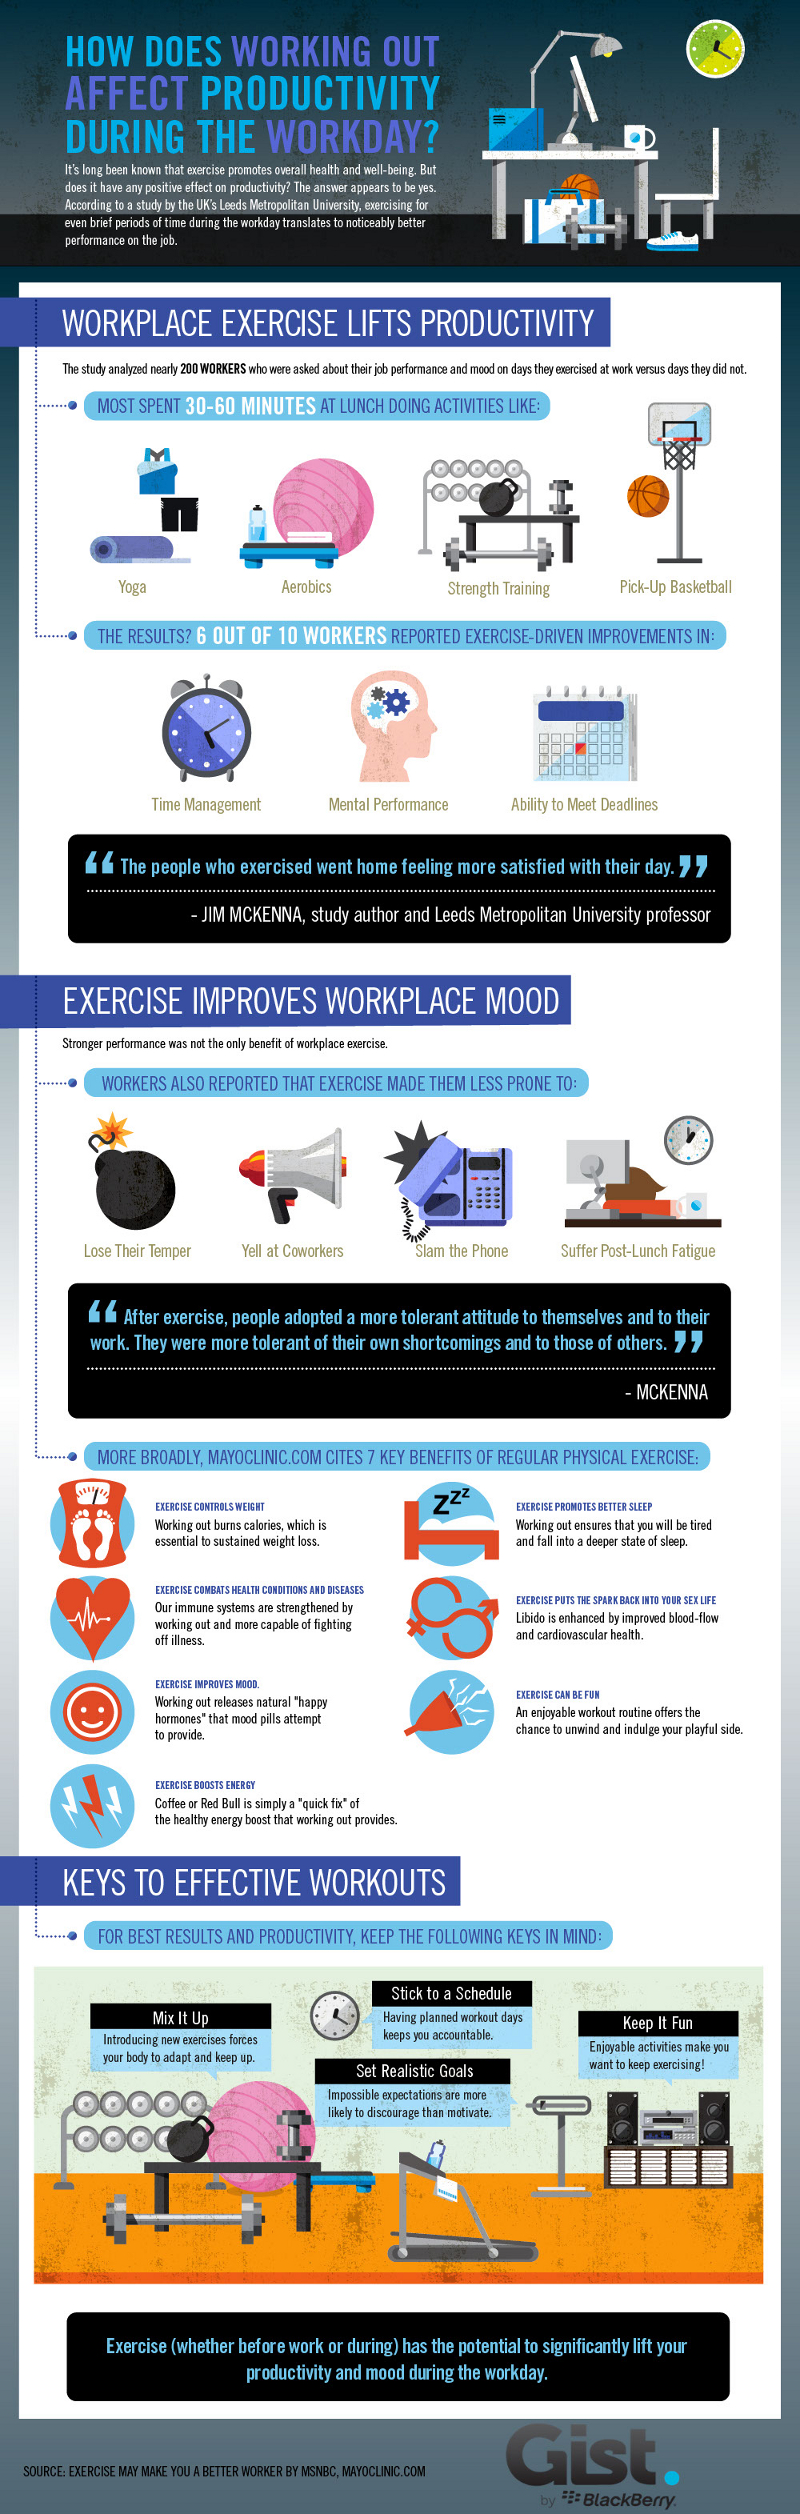 How Exercise Impacts Productivity